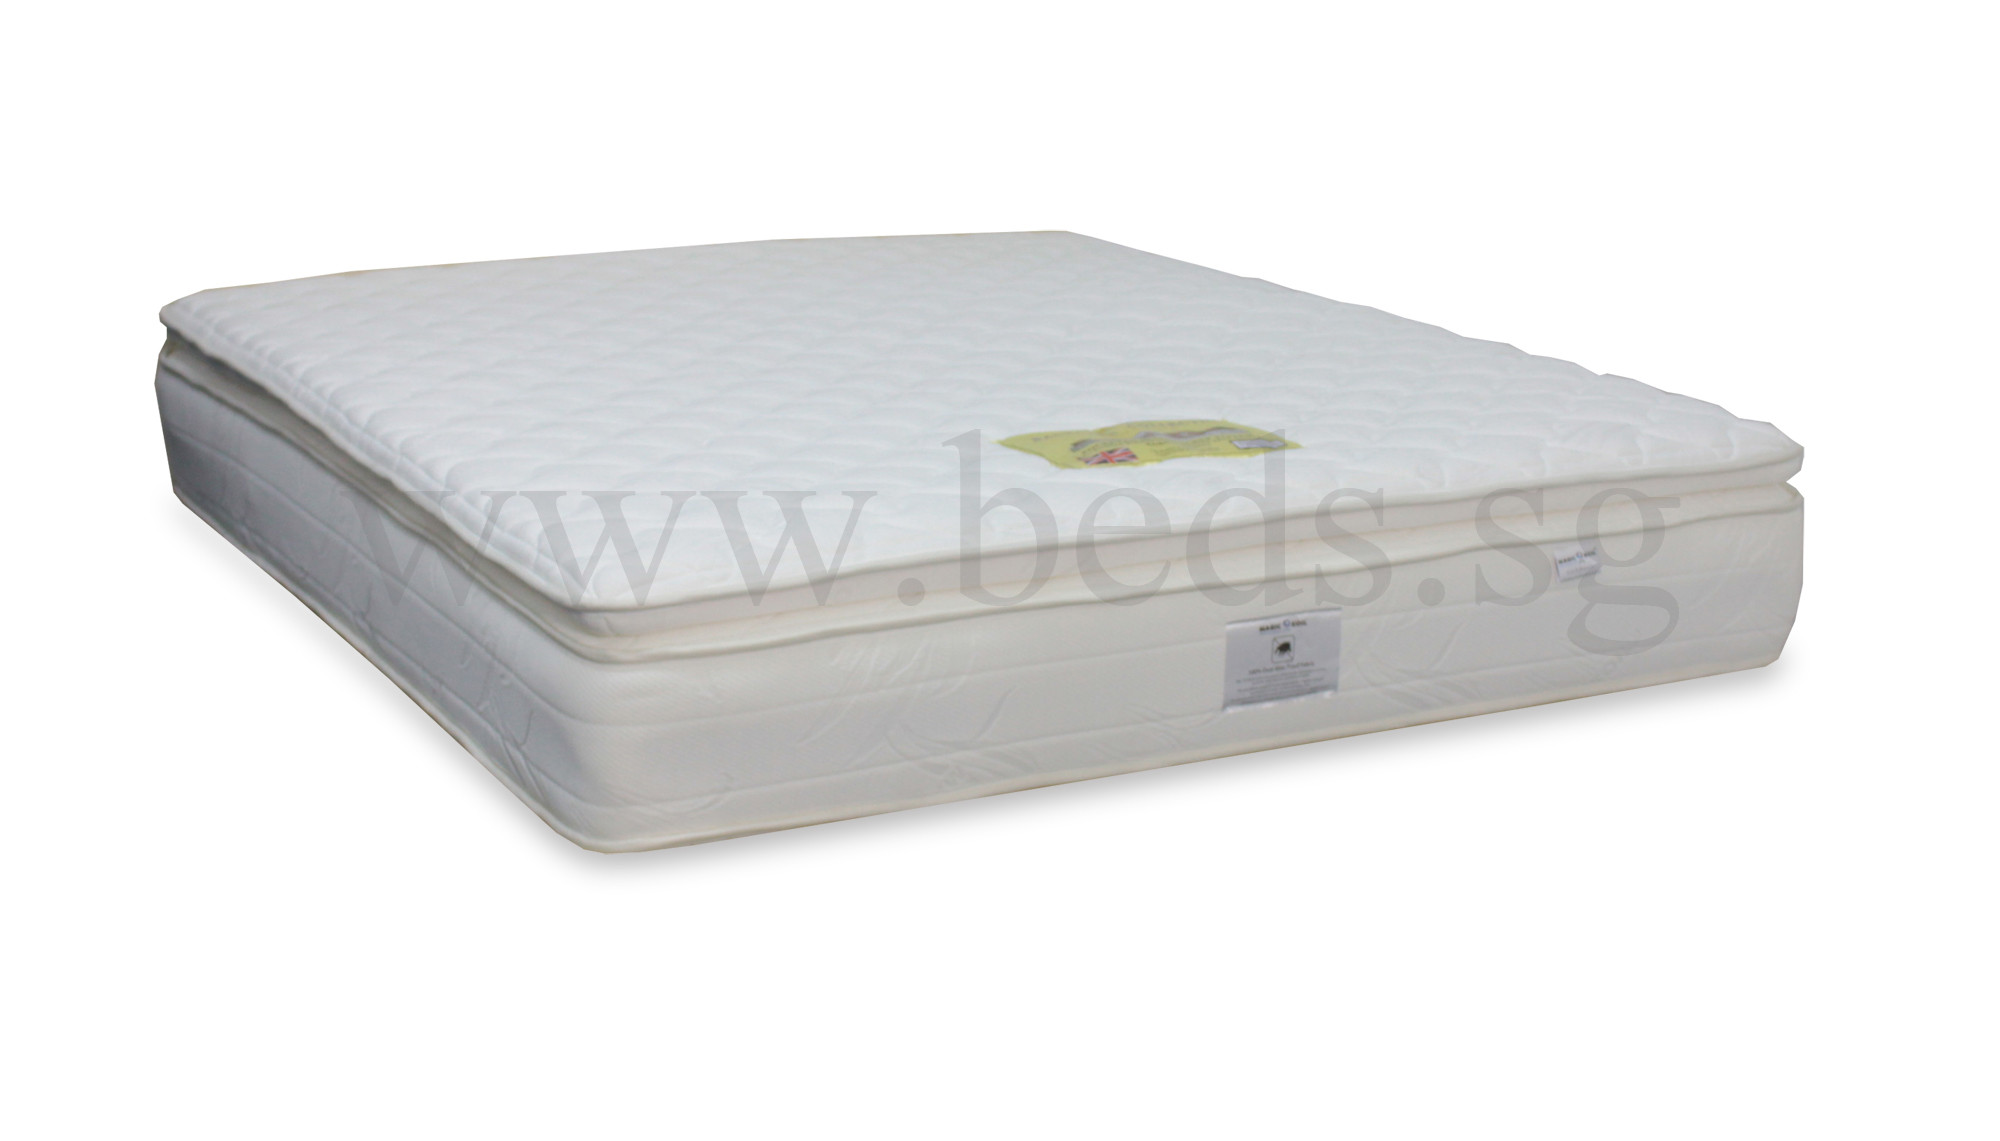 Magic Koil Royal Luxury Pocketed Springs Pillow Top Mattress